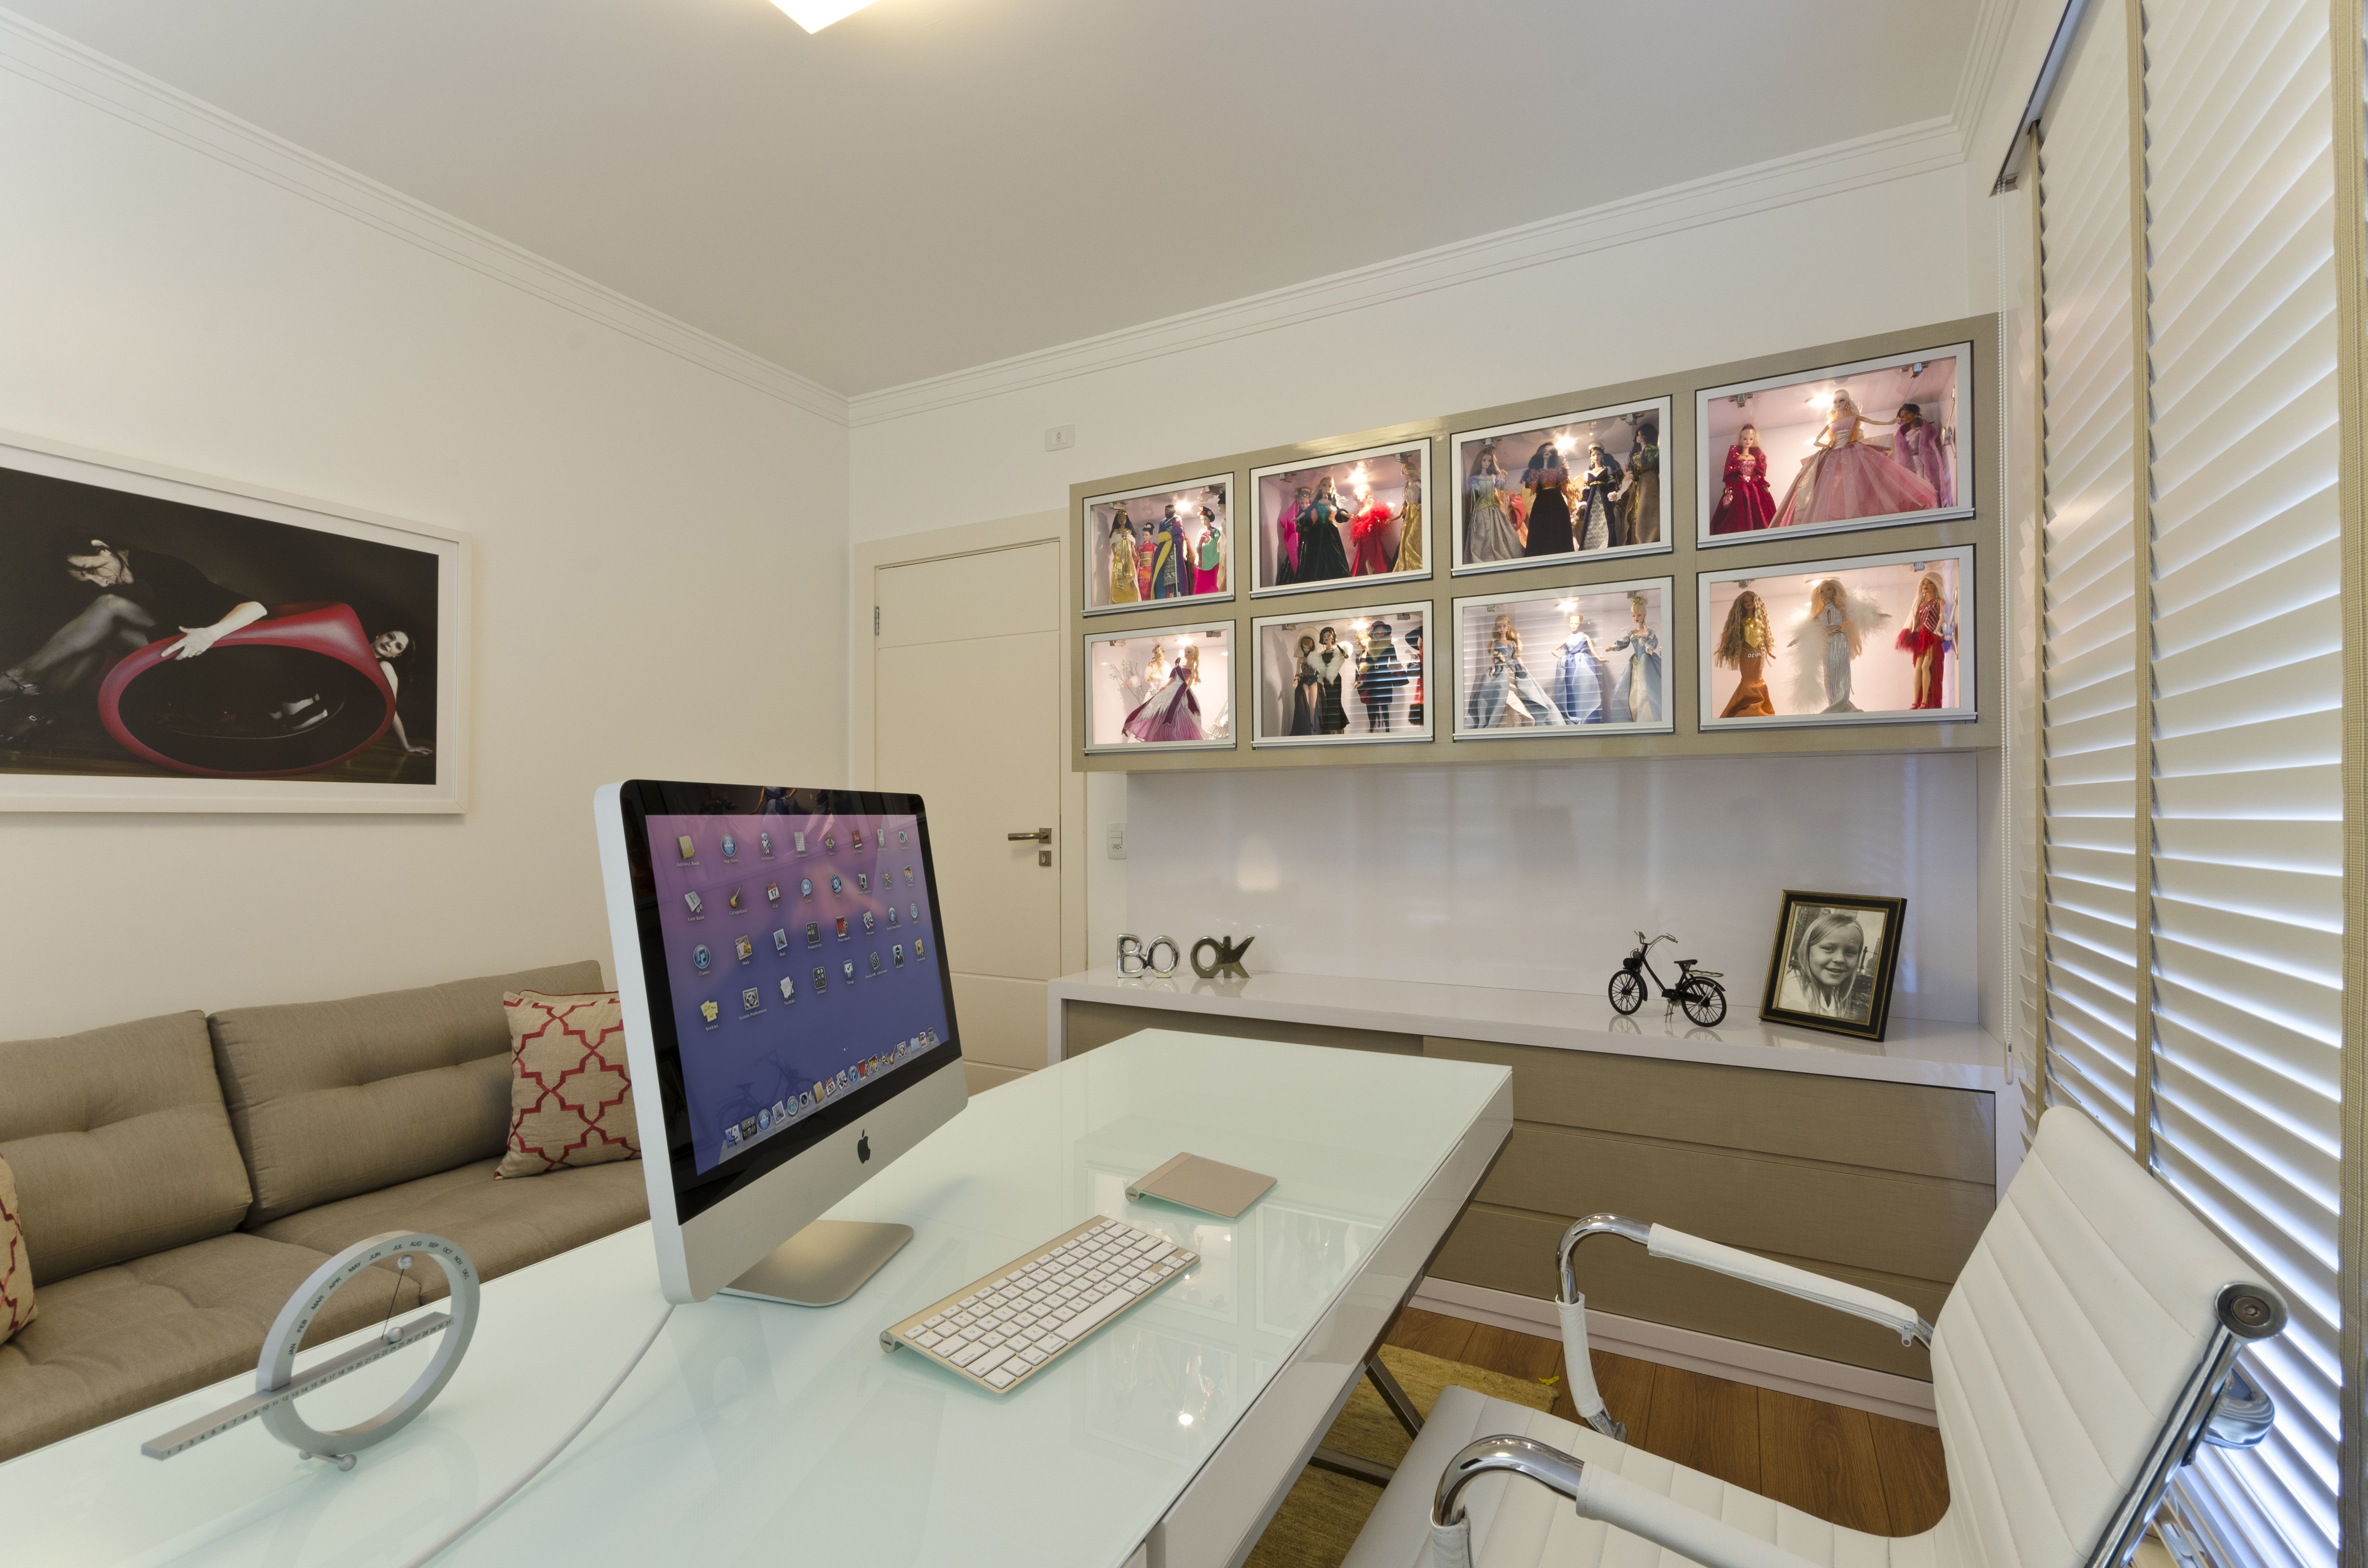 office furniture layout ideas. Home Office : Design Ideas For Small Layout Furniture Idea Desks A 23 E